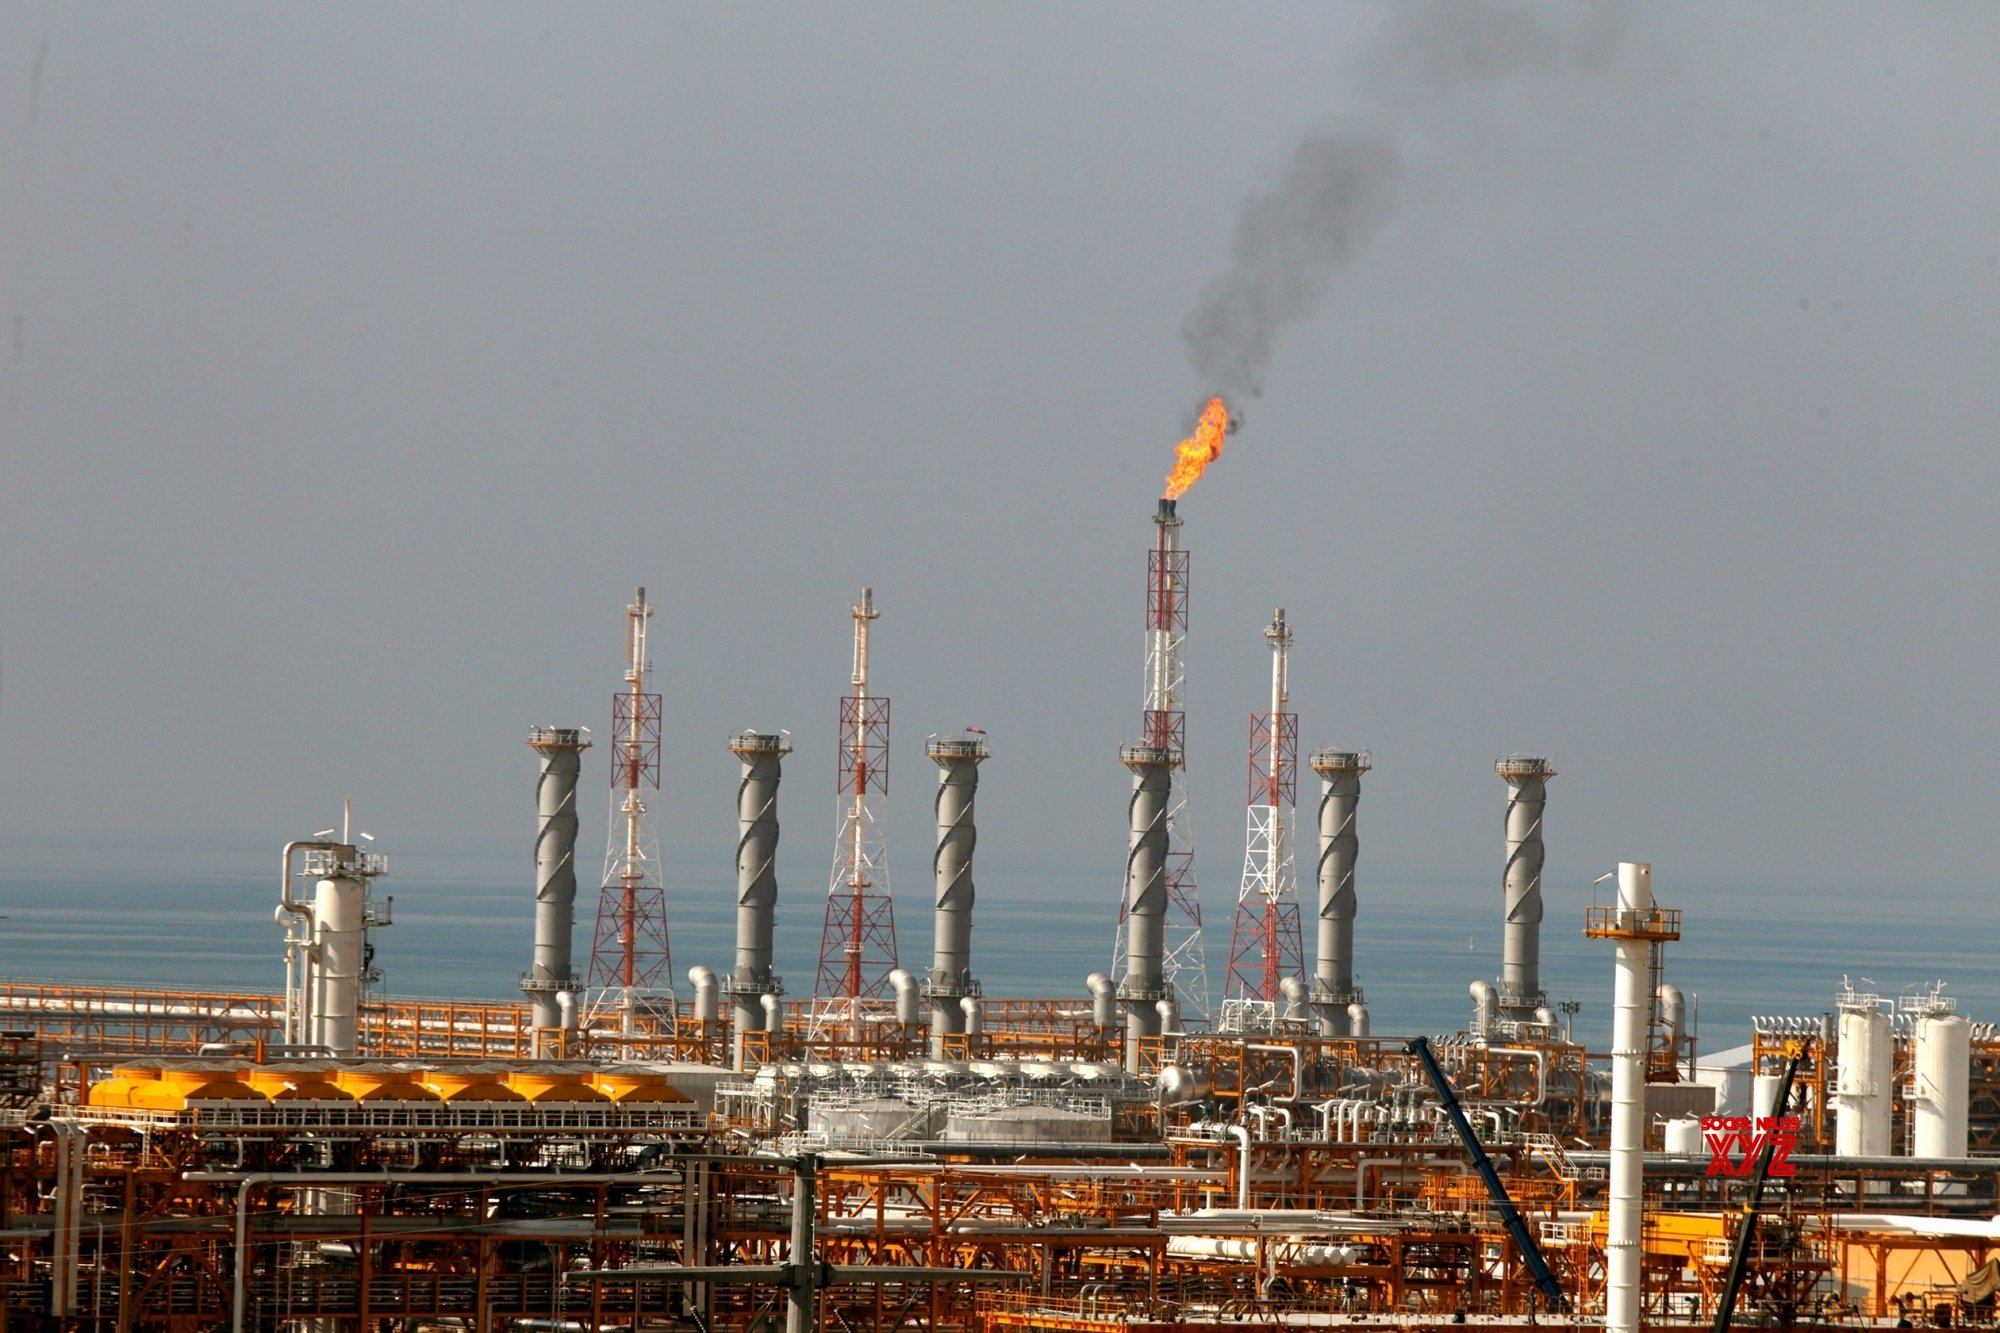 Oil, gas companies incentivise executives to chase growth: Carbon Tracker